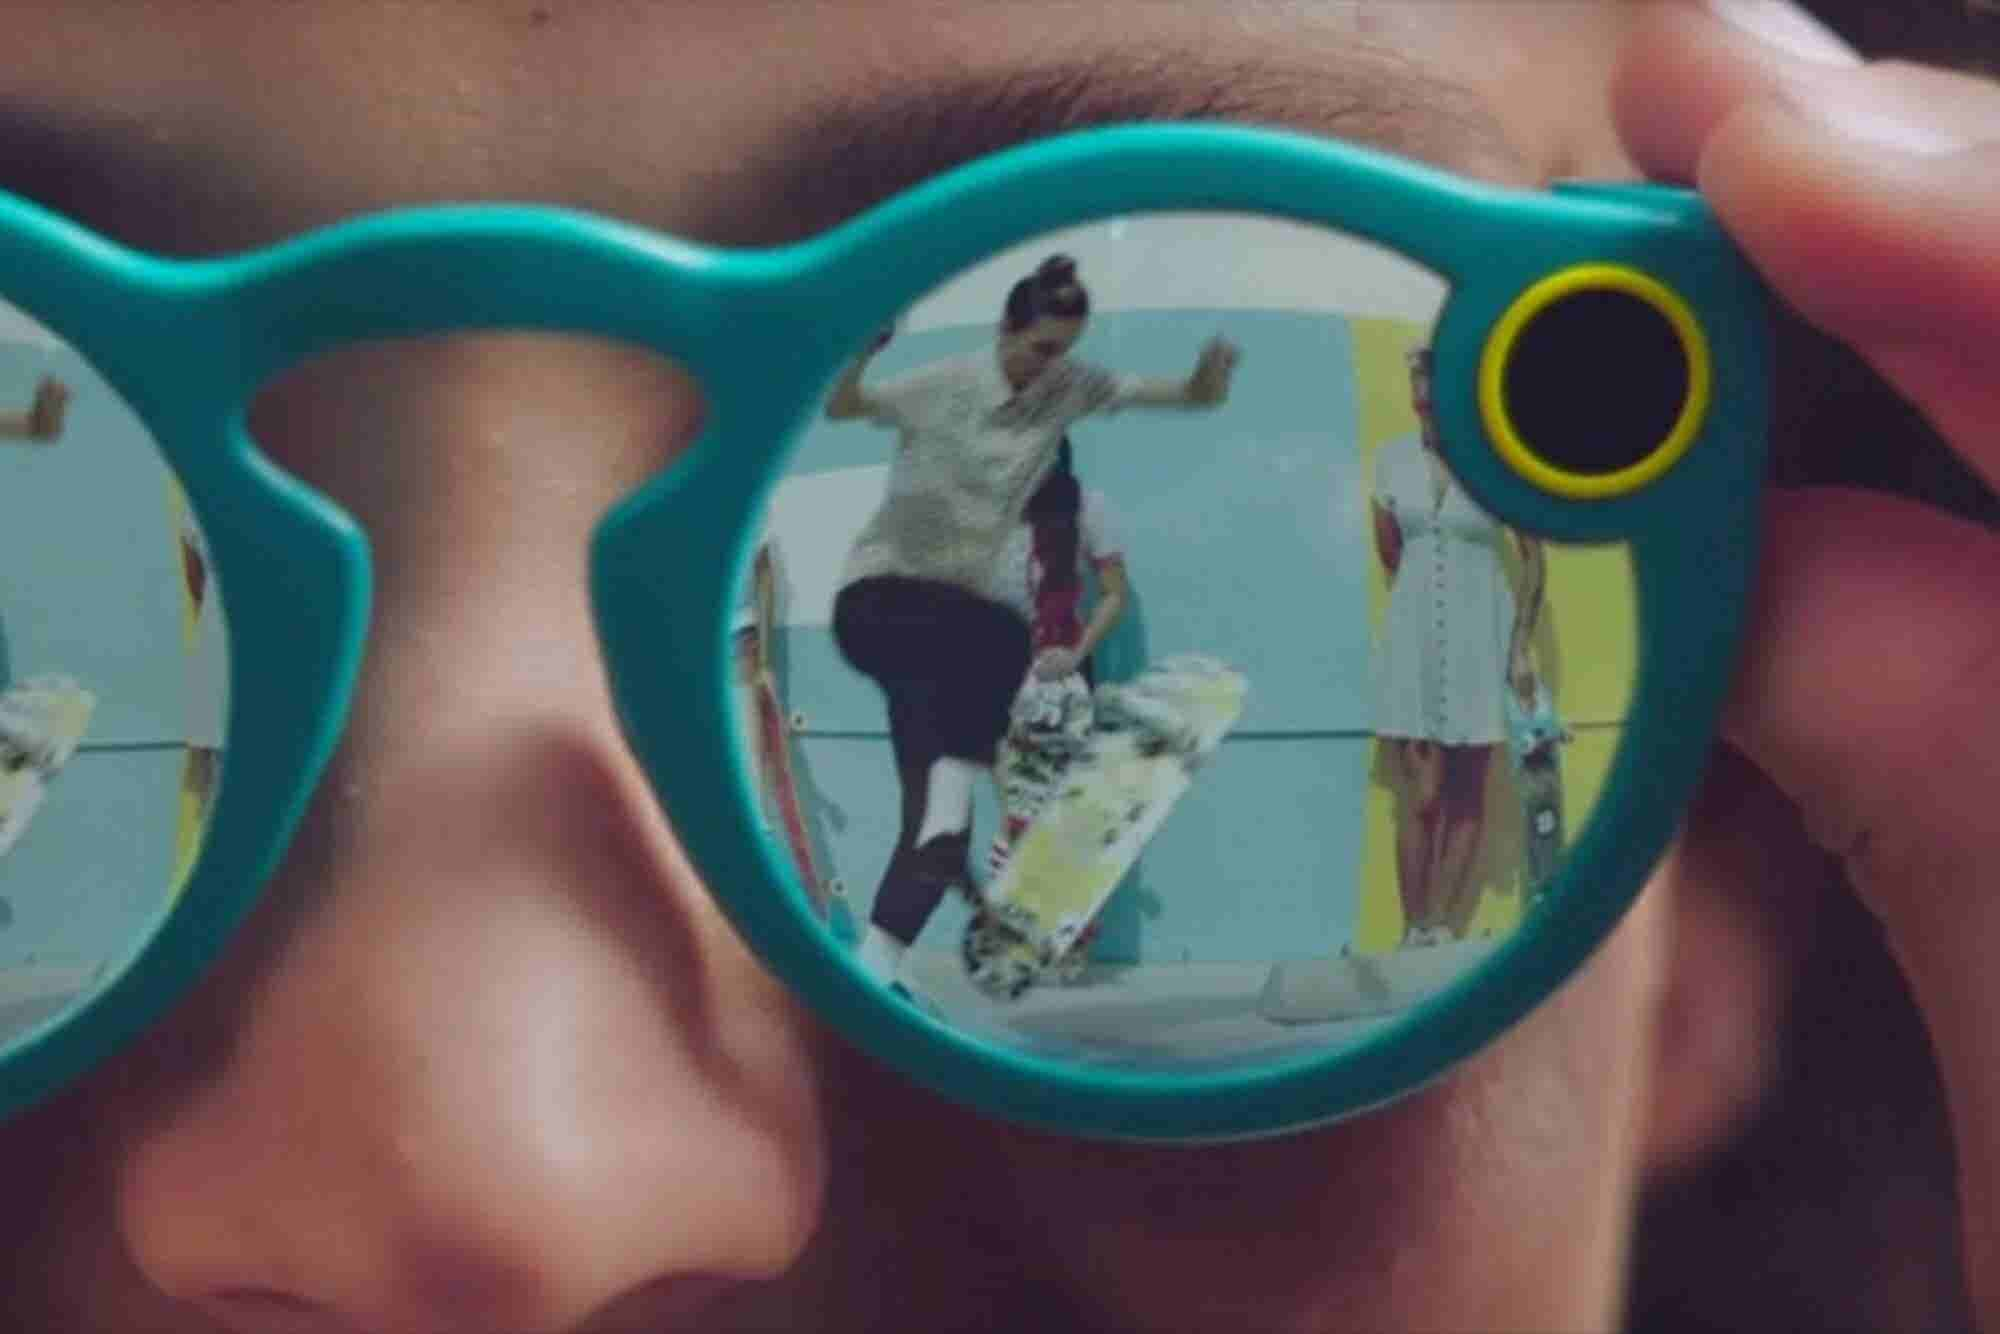 Snapchat's Spectacles: Not Just for Millennials